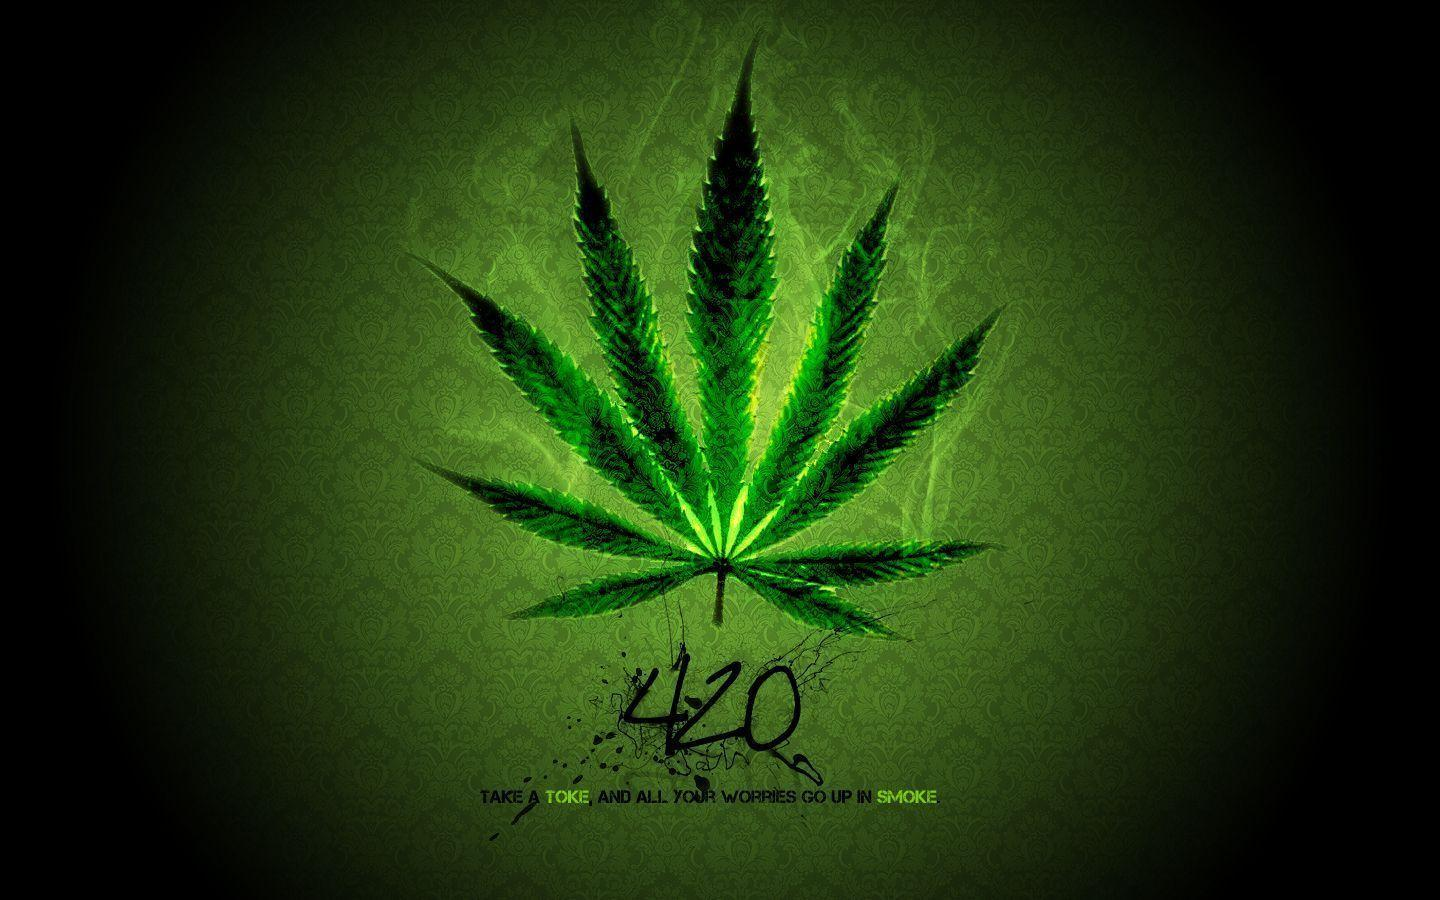 weed-smoke-wallpaper-full-hd-On-wallpaper-hd | VCC Brands